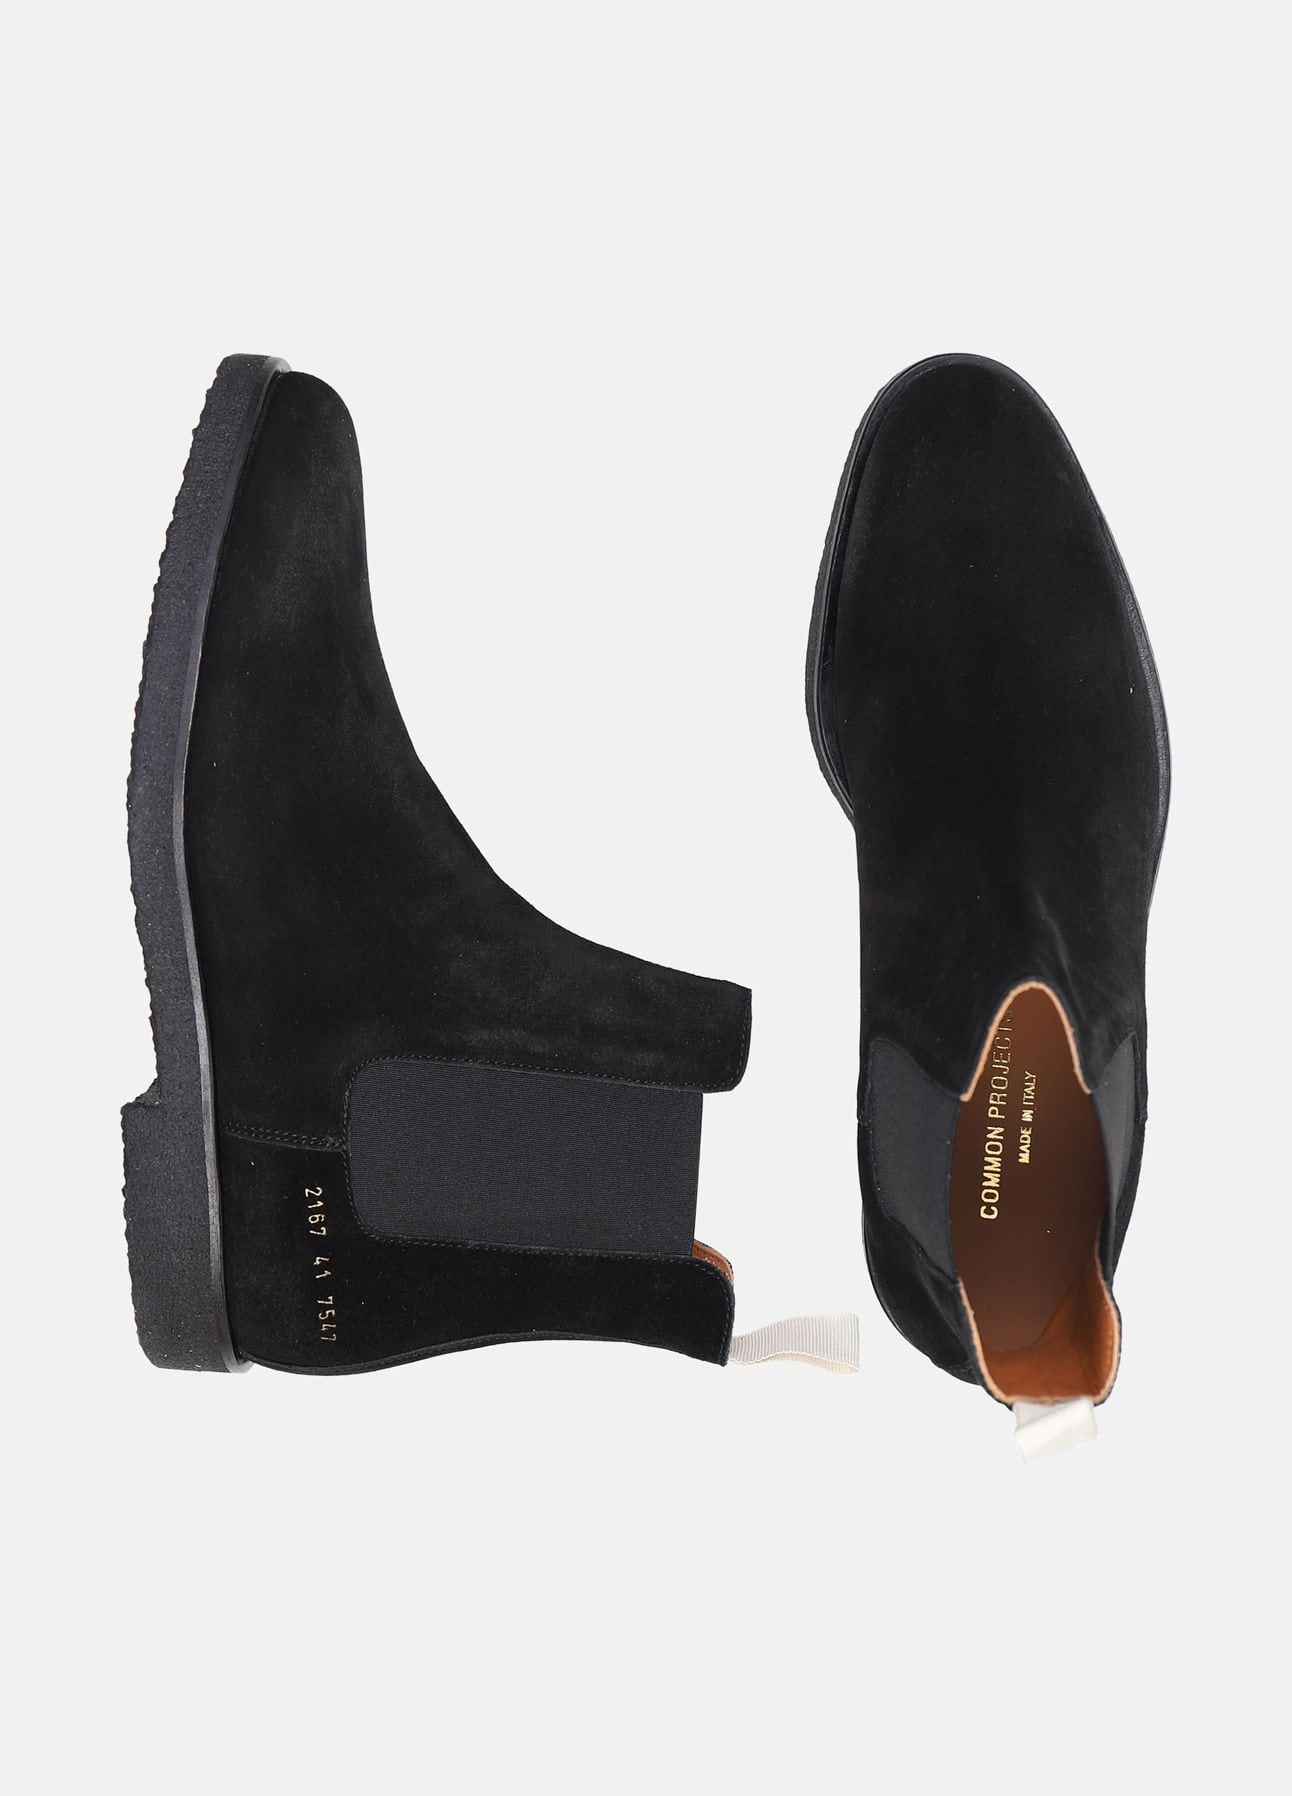 Sort Chelsea boot fra Common Projects